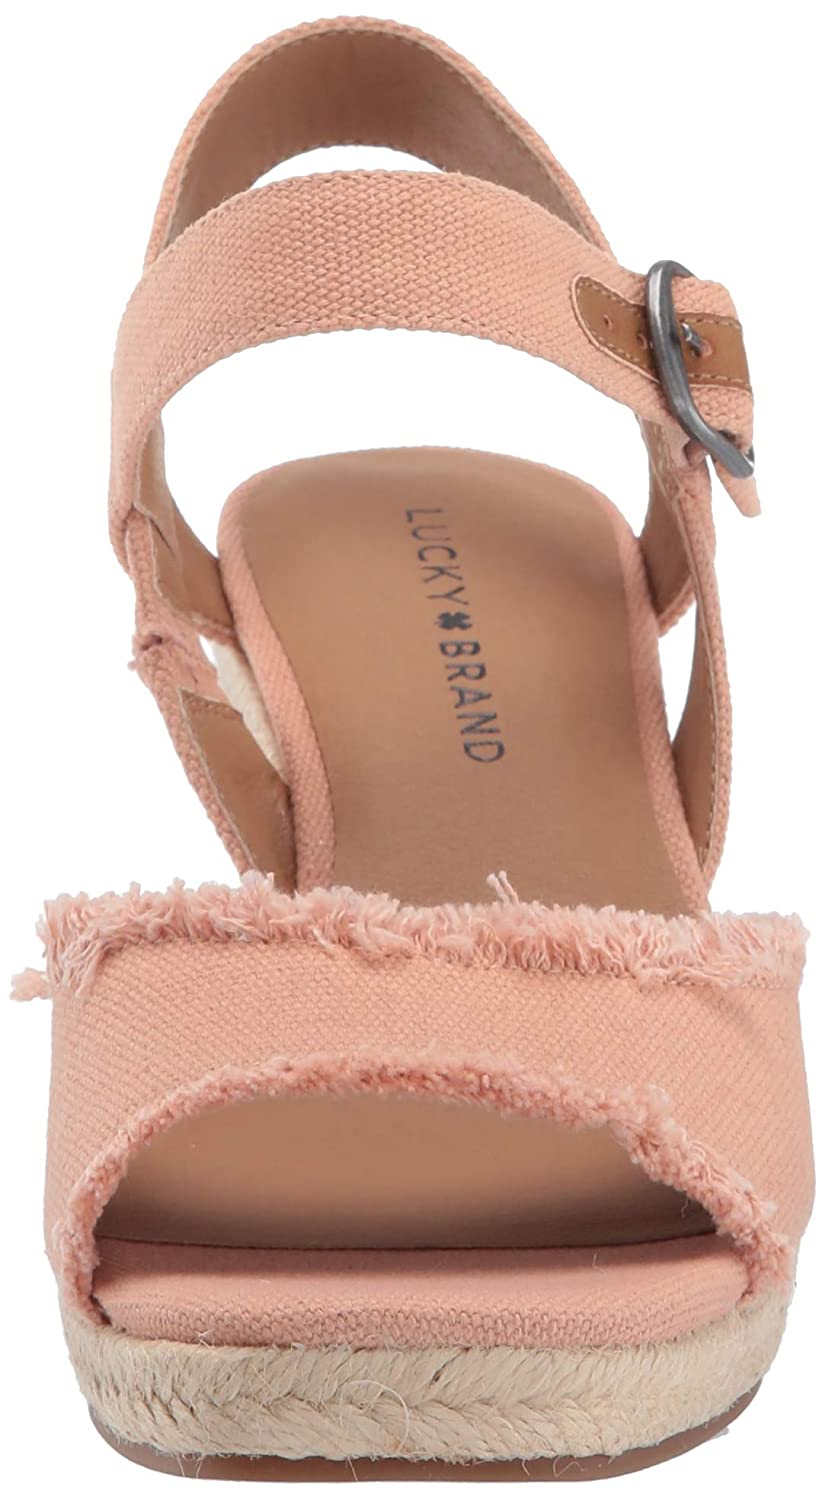 3285432a09564 Lucky Brand Womens Mindra Wedge Espadrille Wedge Sandal